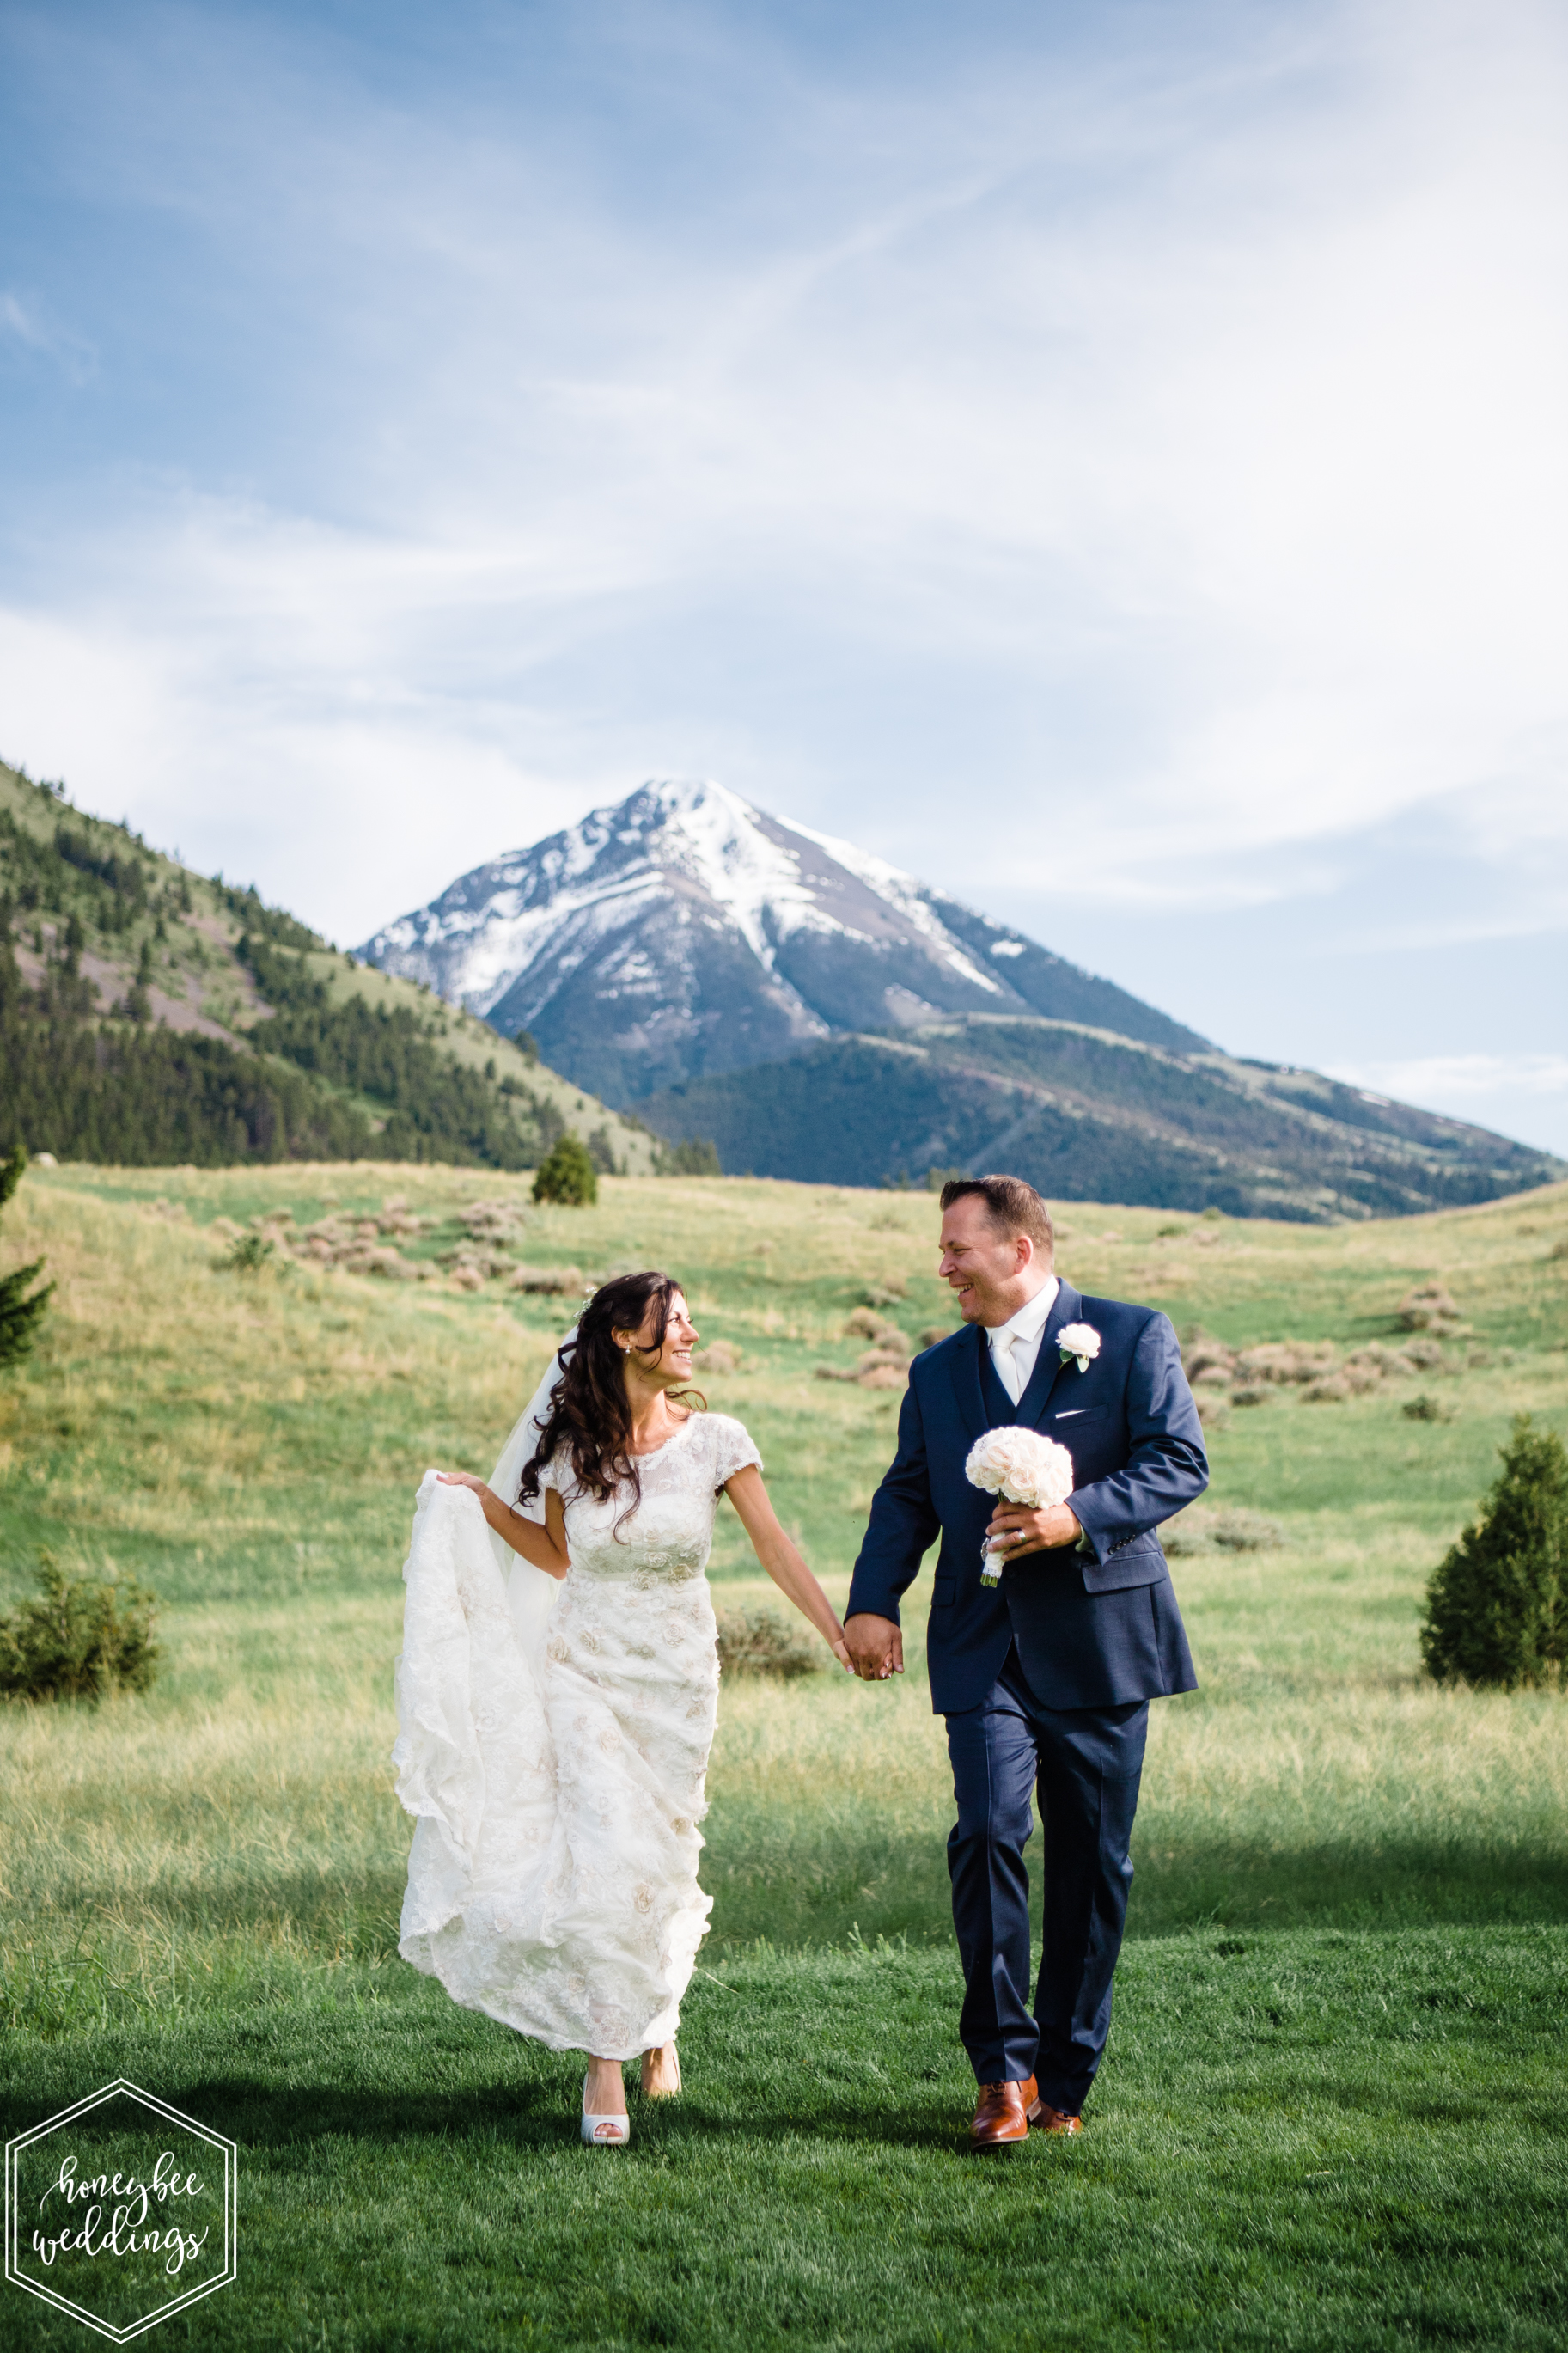 029Montana wedding photographer videographer_Chico hot springs wedding_Honeybee Weddings_Claudia & Bill_June 03, 2019-595.jpg